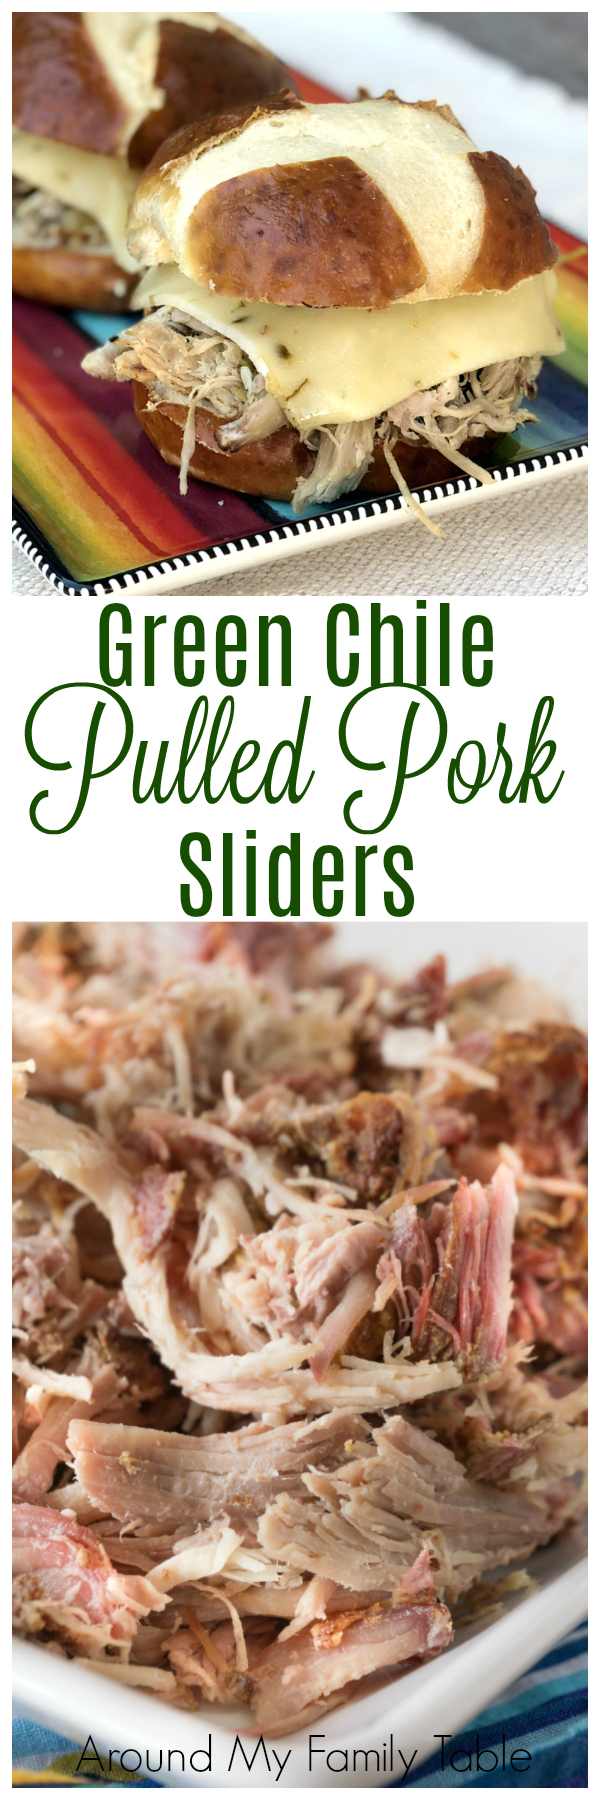 green chile pulled pork and sliders